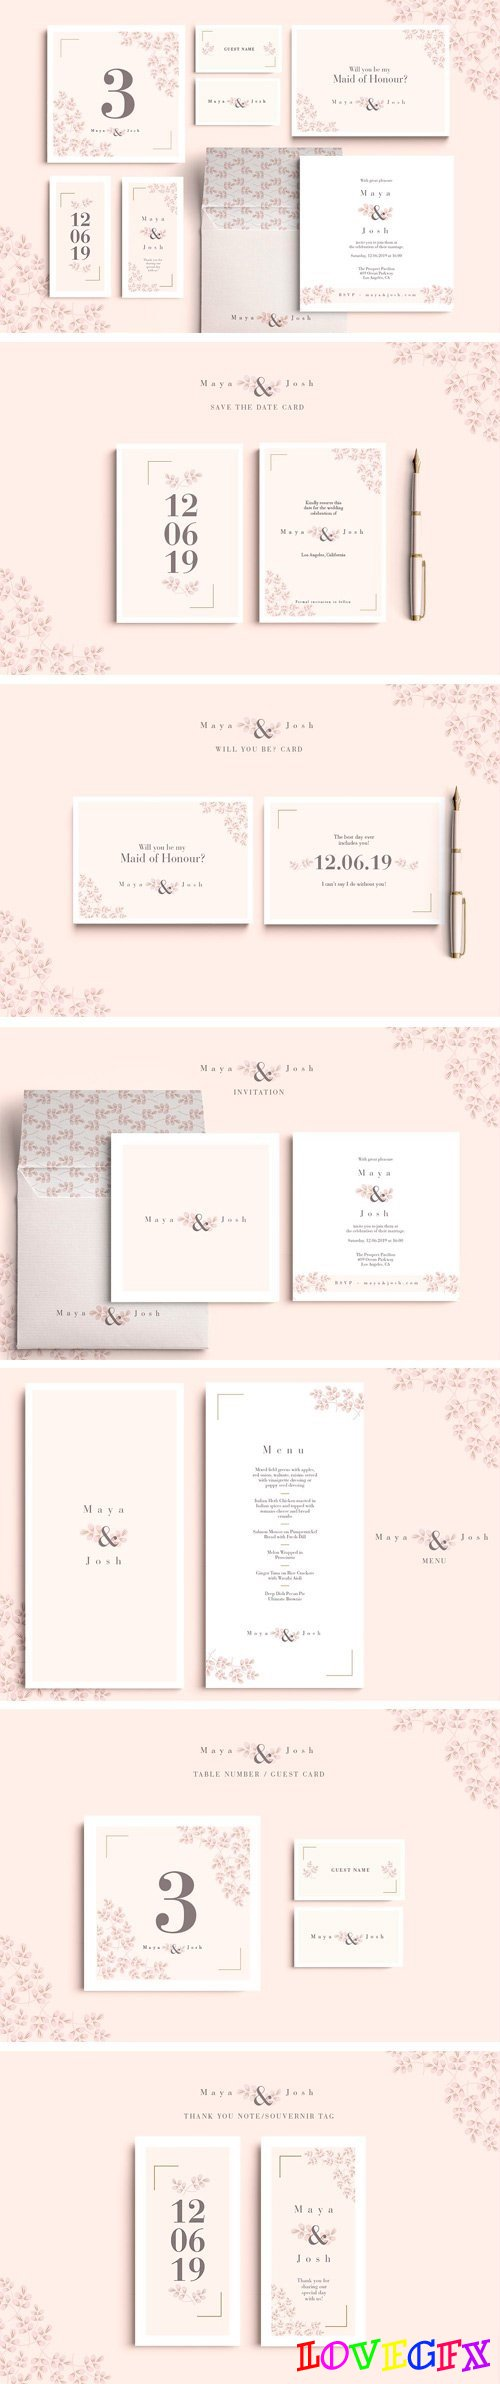 Selbach Wedding Set 2182465